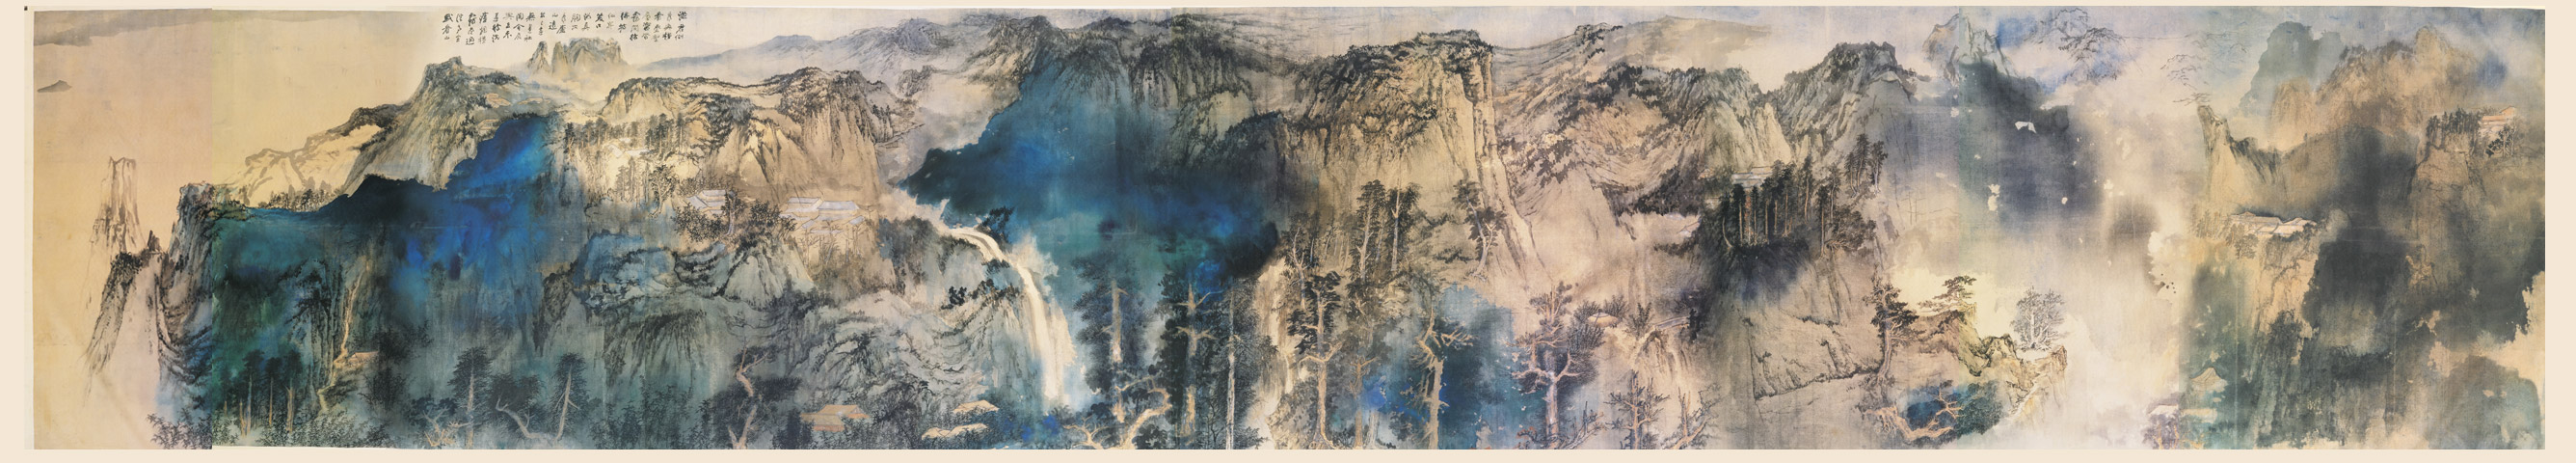 Chinese Landscape Painting China Online Museum